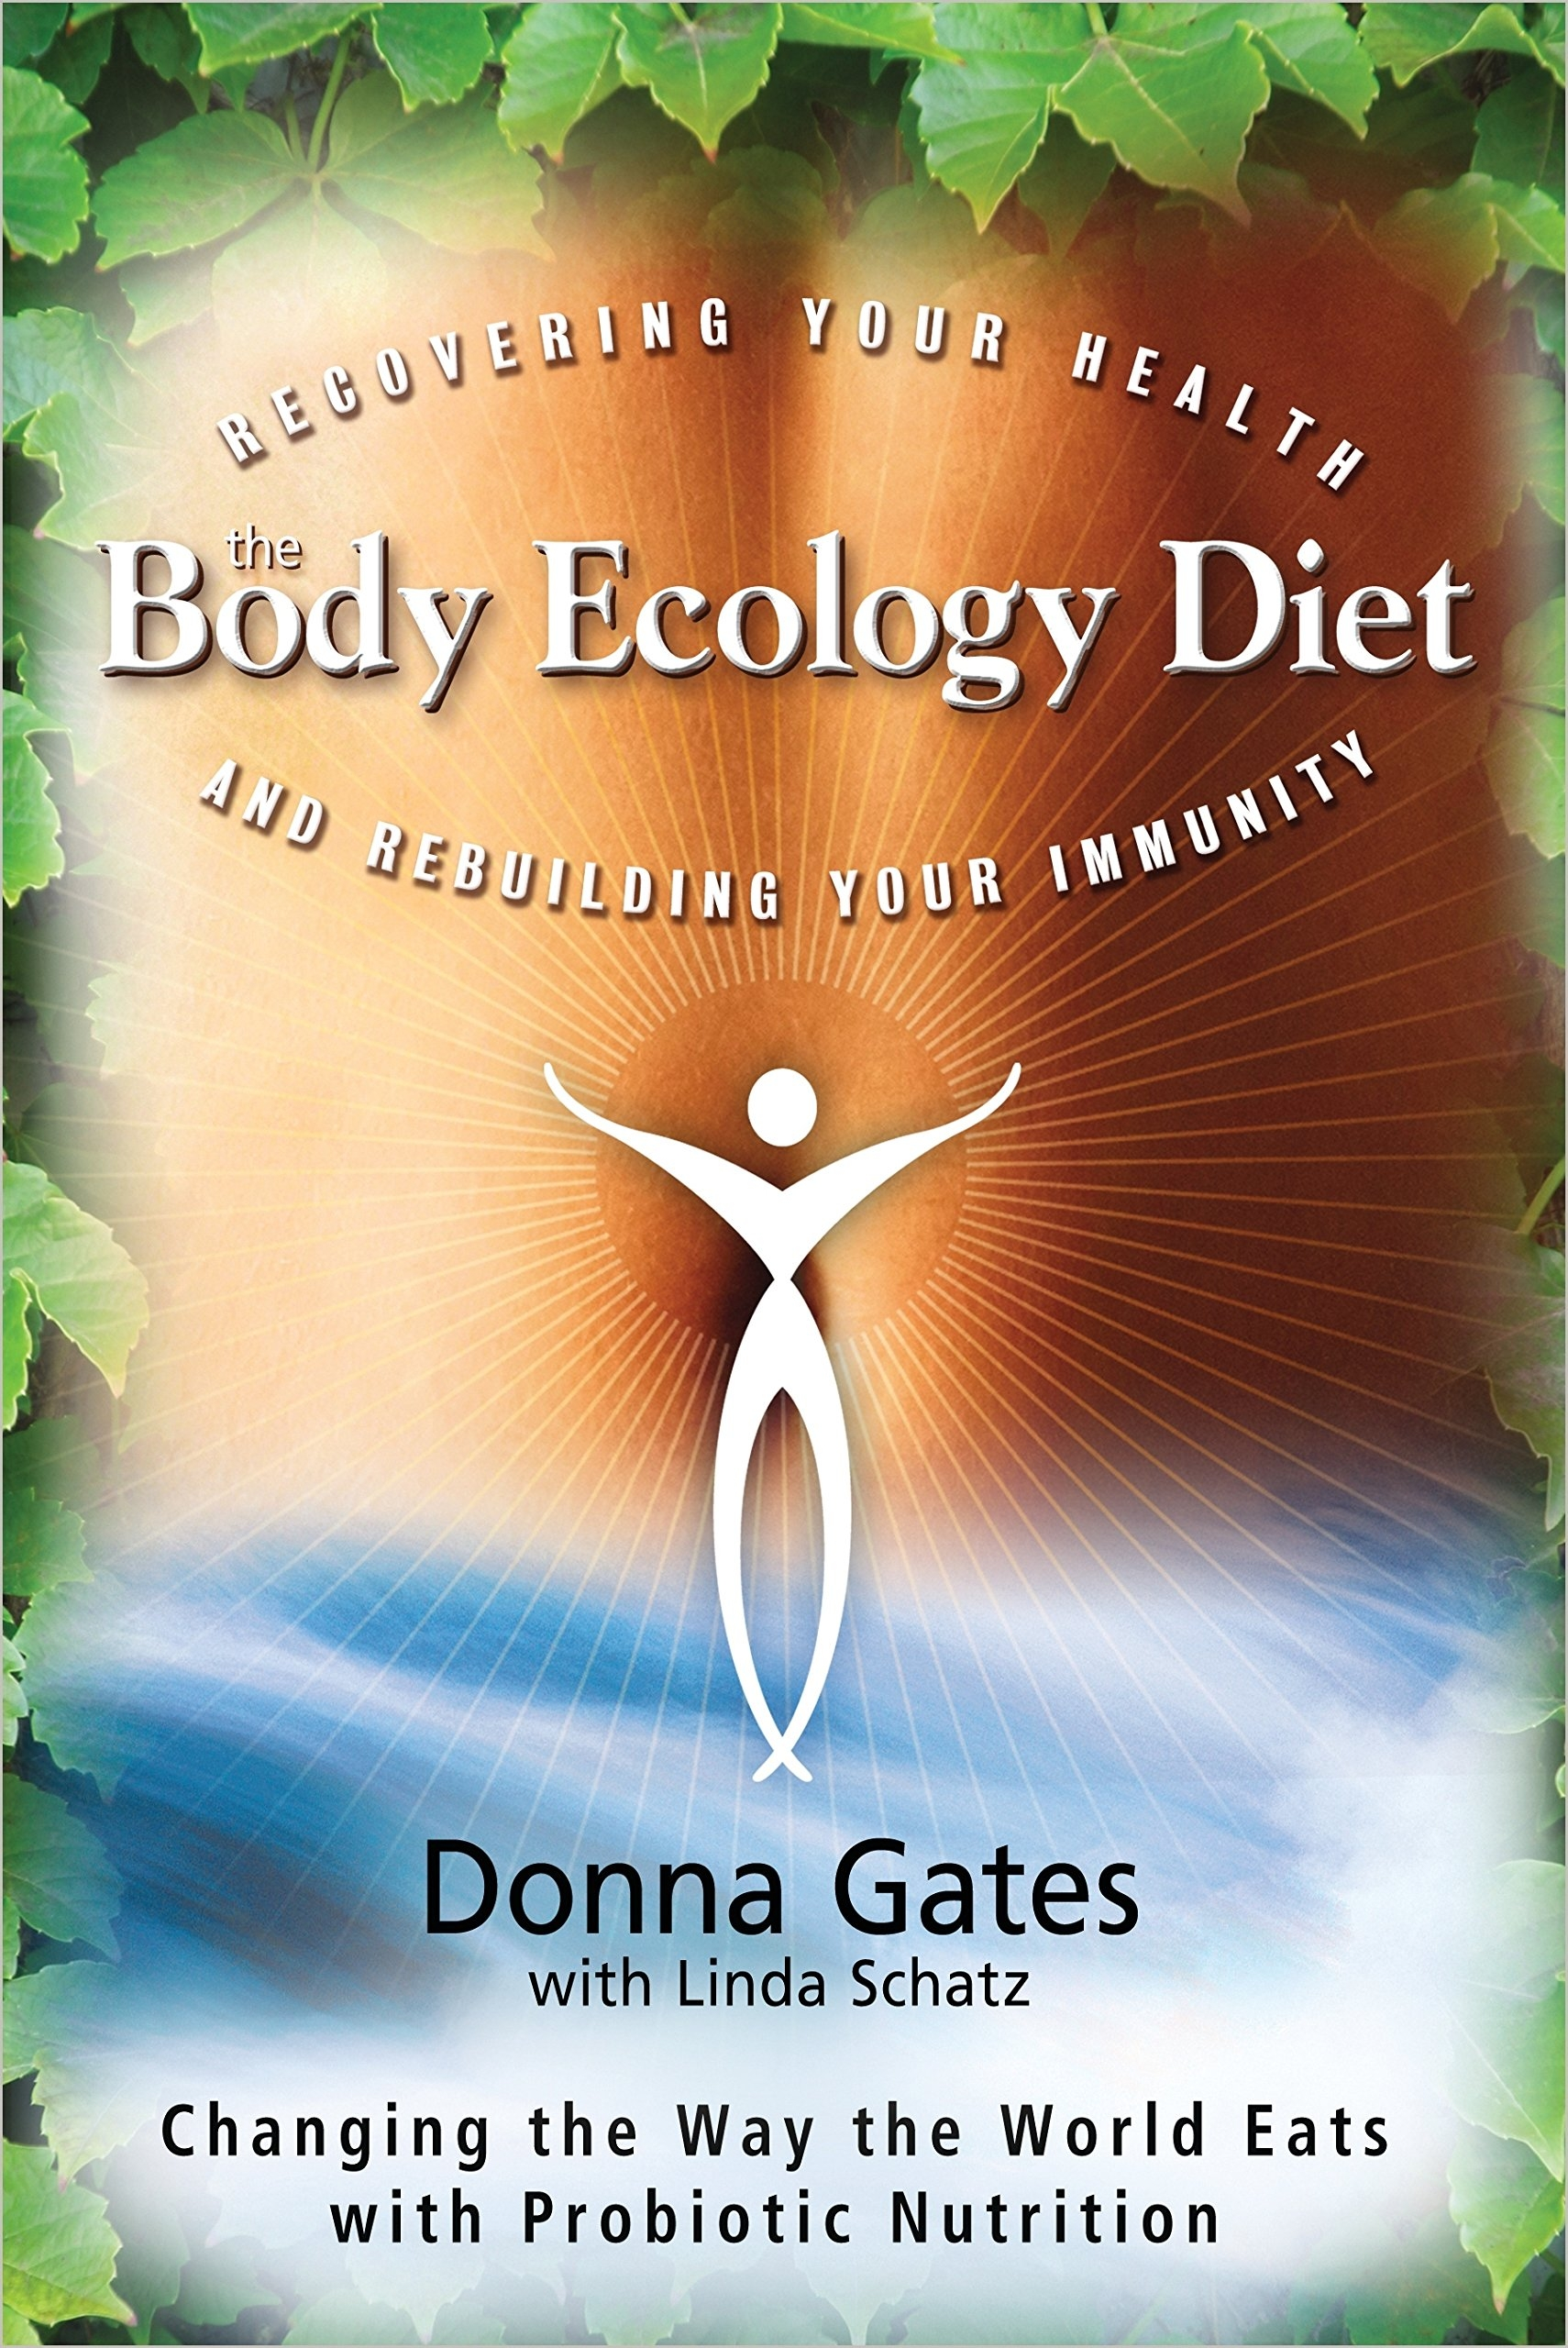 body ecology diet donna gates|heal your gut books